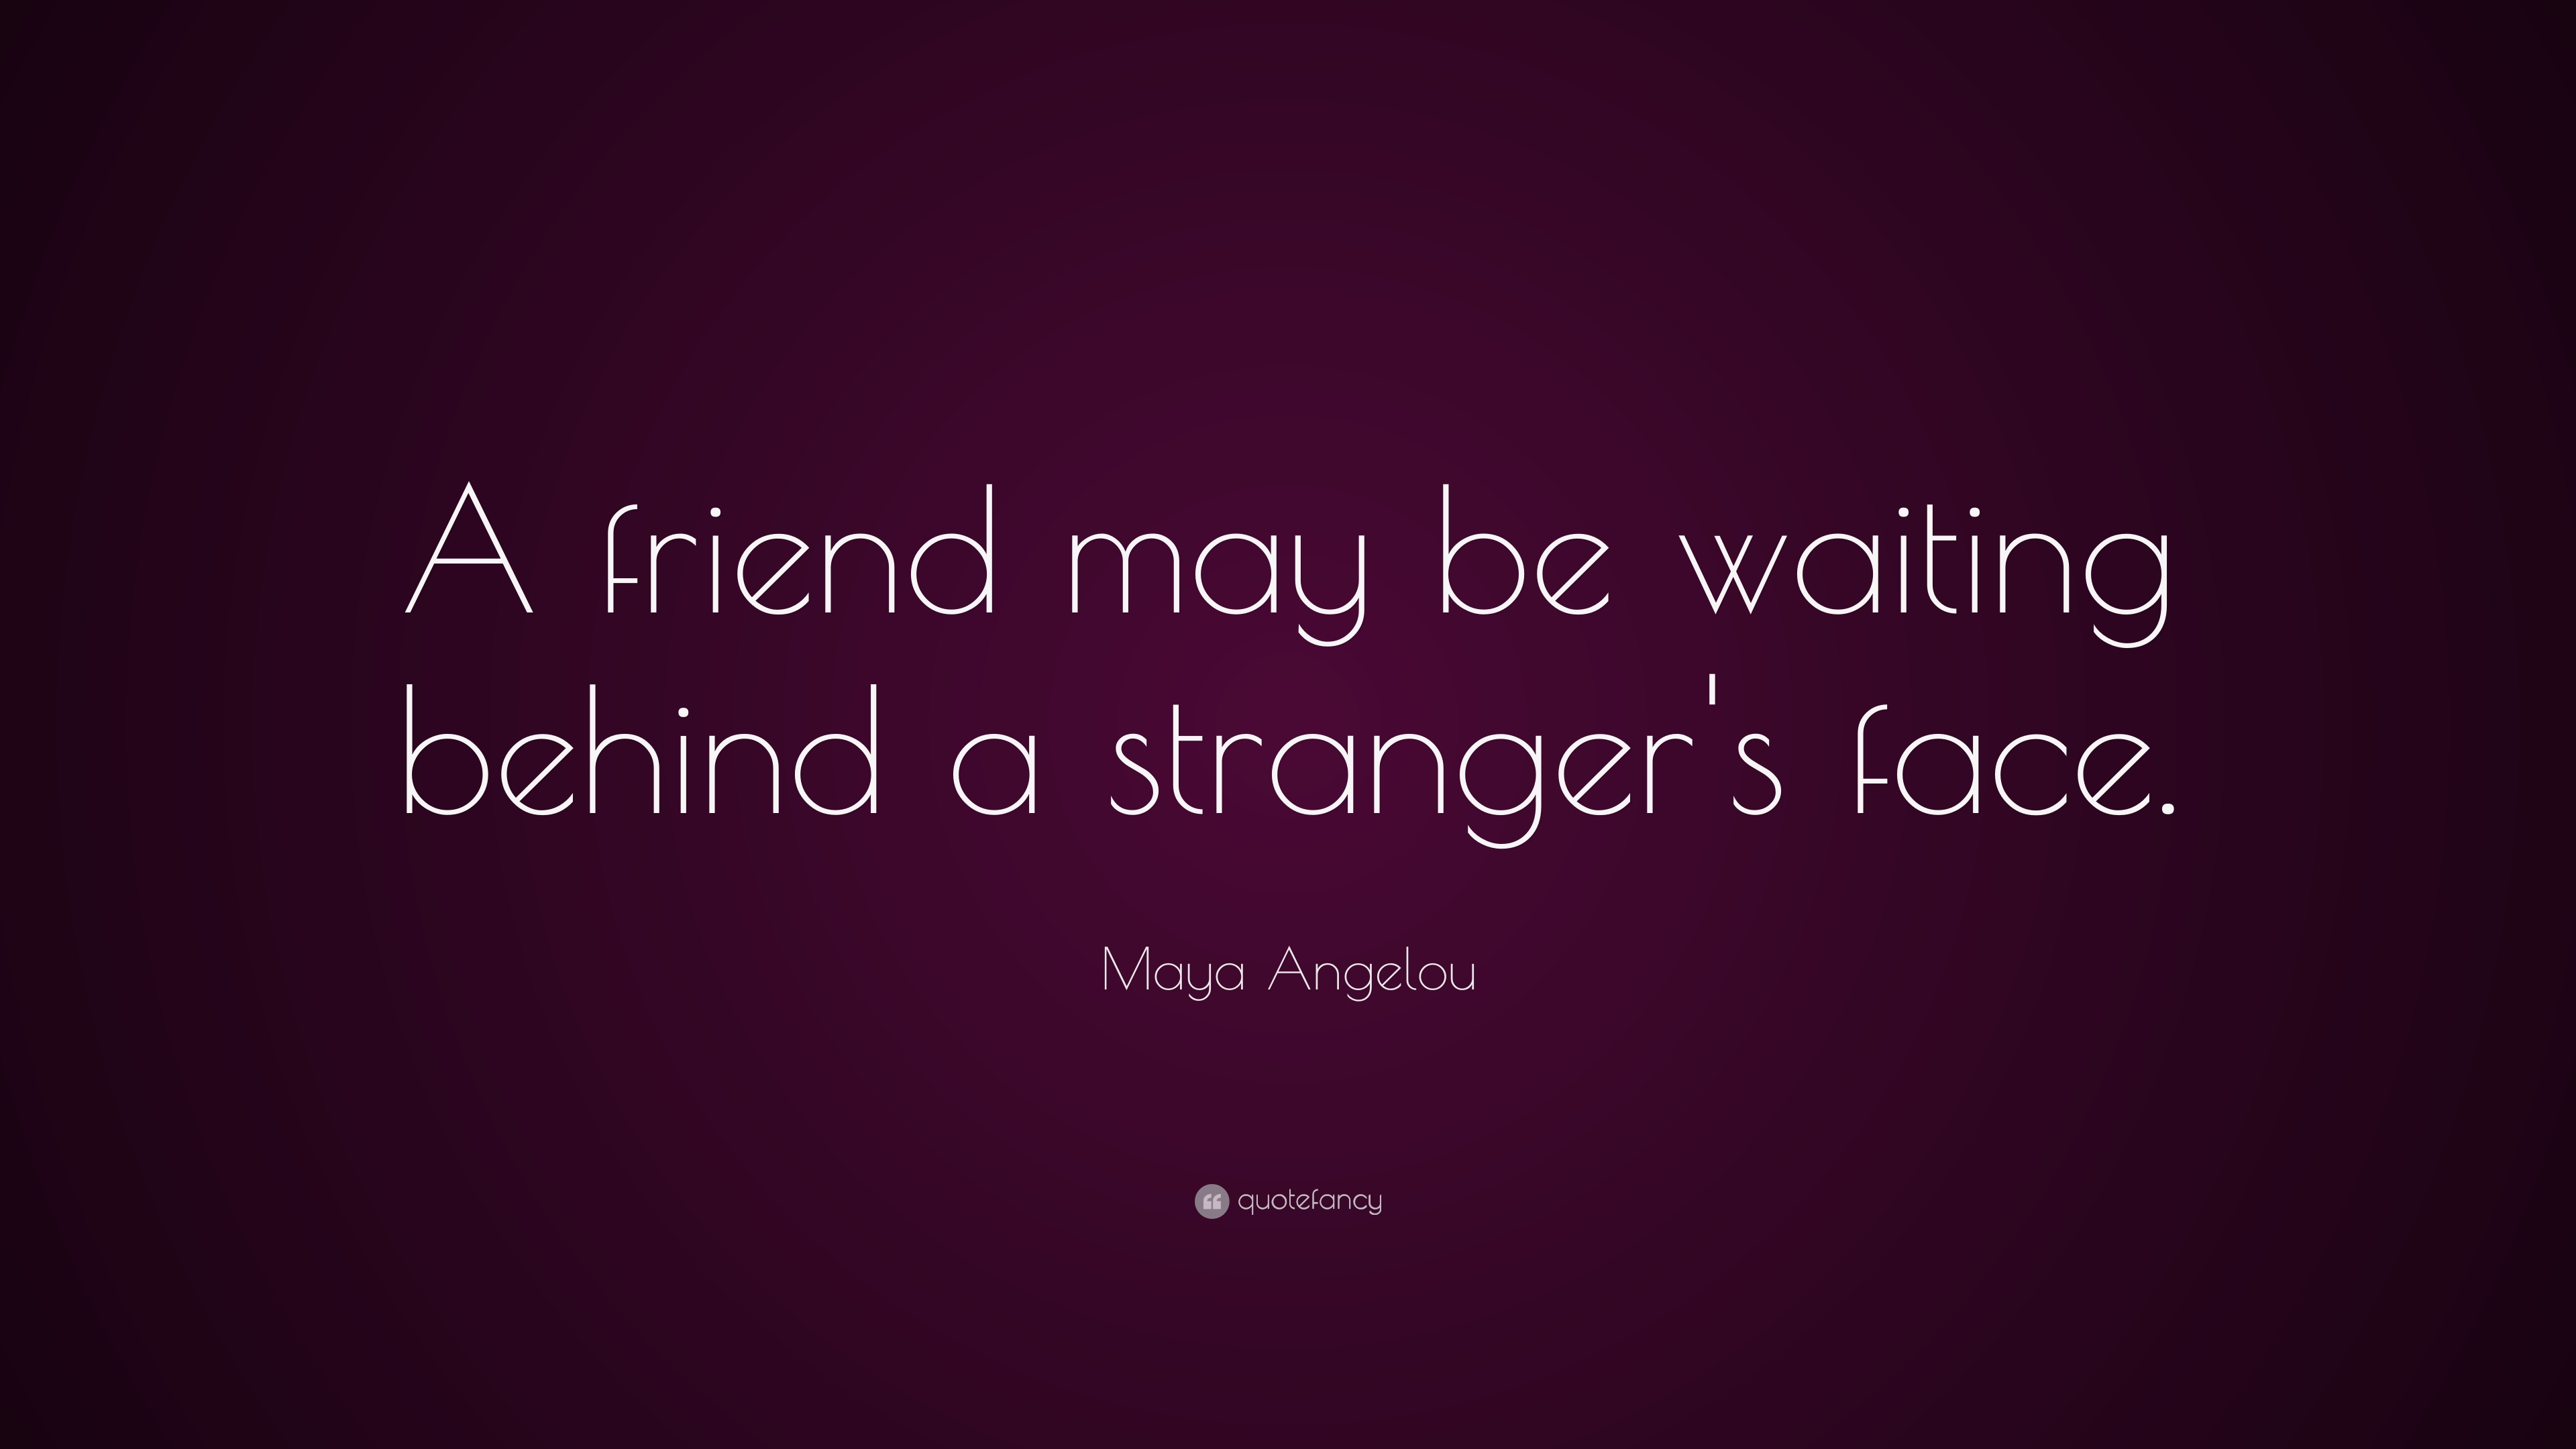 Maya Angelou Quotes (25 wallpapers) - Quotefancy Maya Angelou Quotes On Friendship And Love